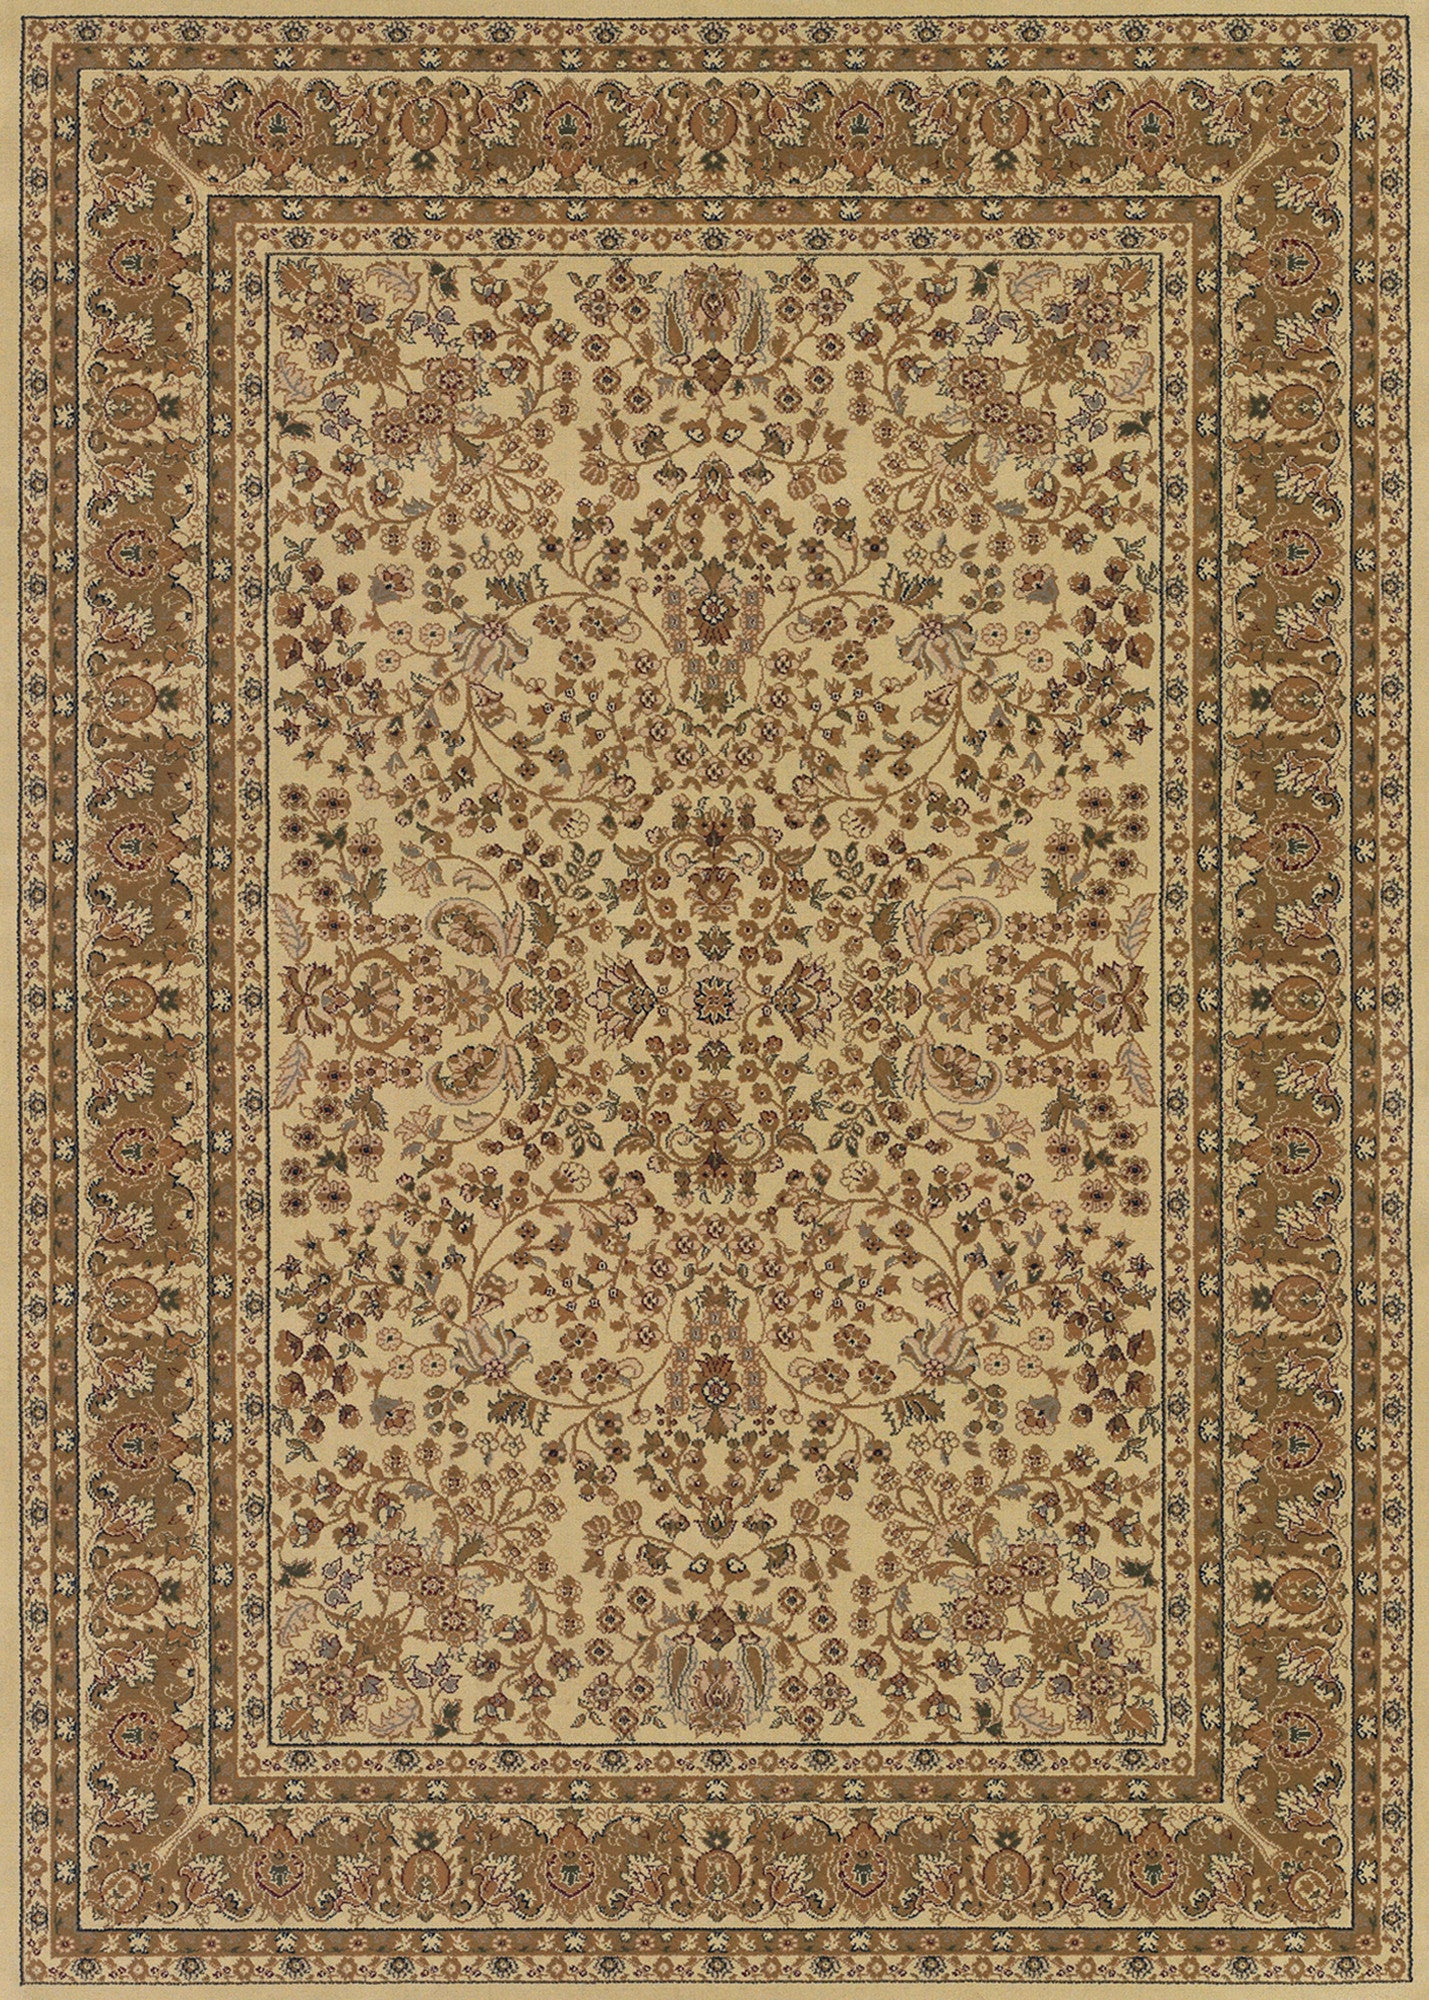 Couristan Izmir Floral Mashhad Ivory Area Rug Incredible Rugs And Decor